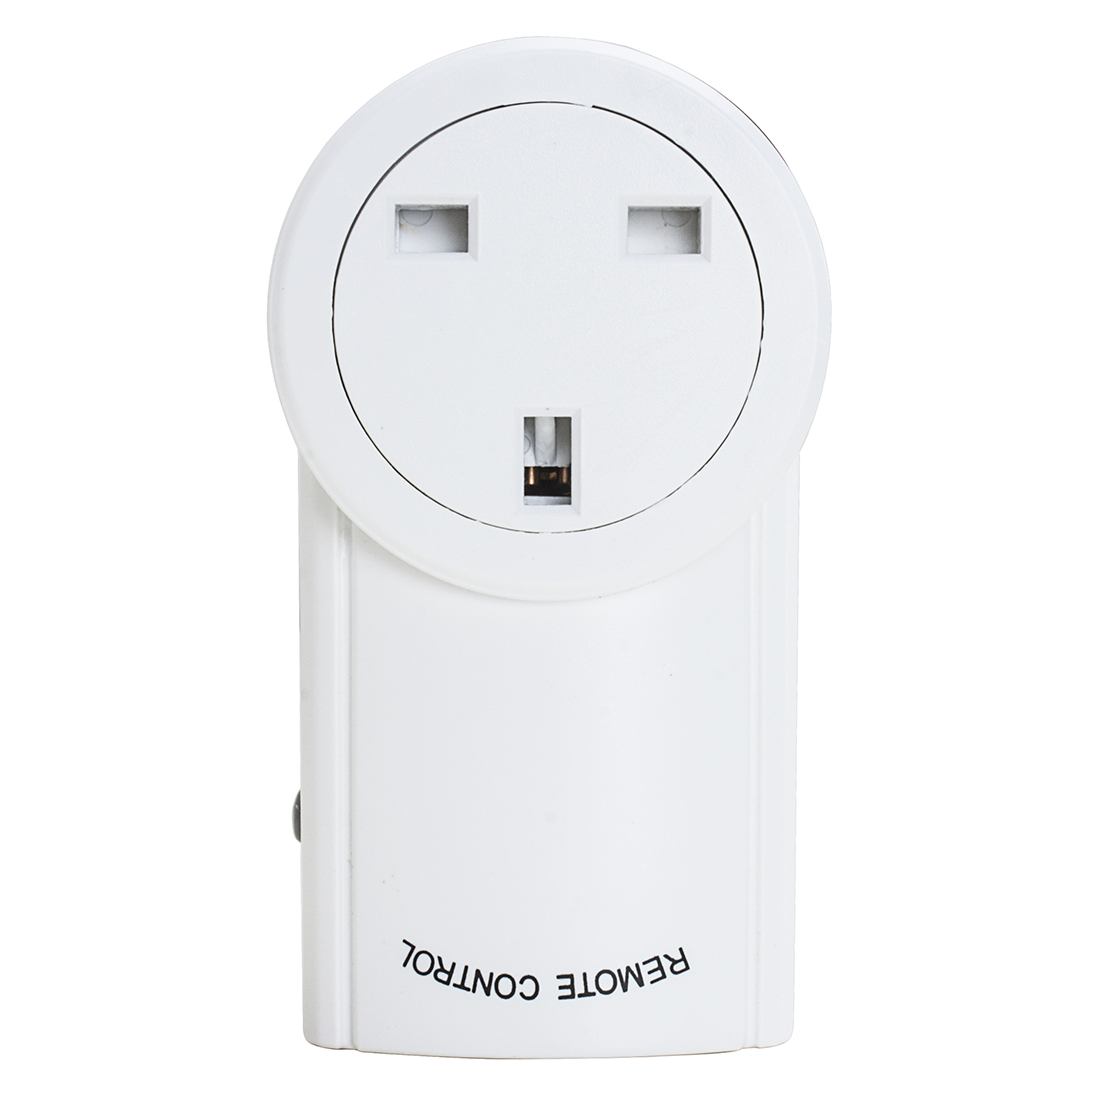 5Pcs AC230V 10A UK Plug Wireless Remote Control UK Socket Outlet w 1 Transmitter - image 3 de 7